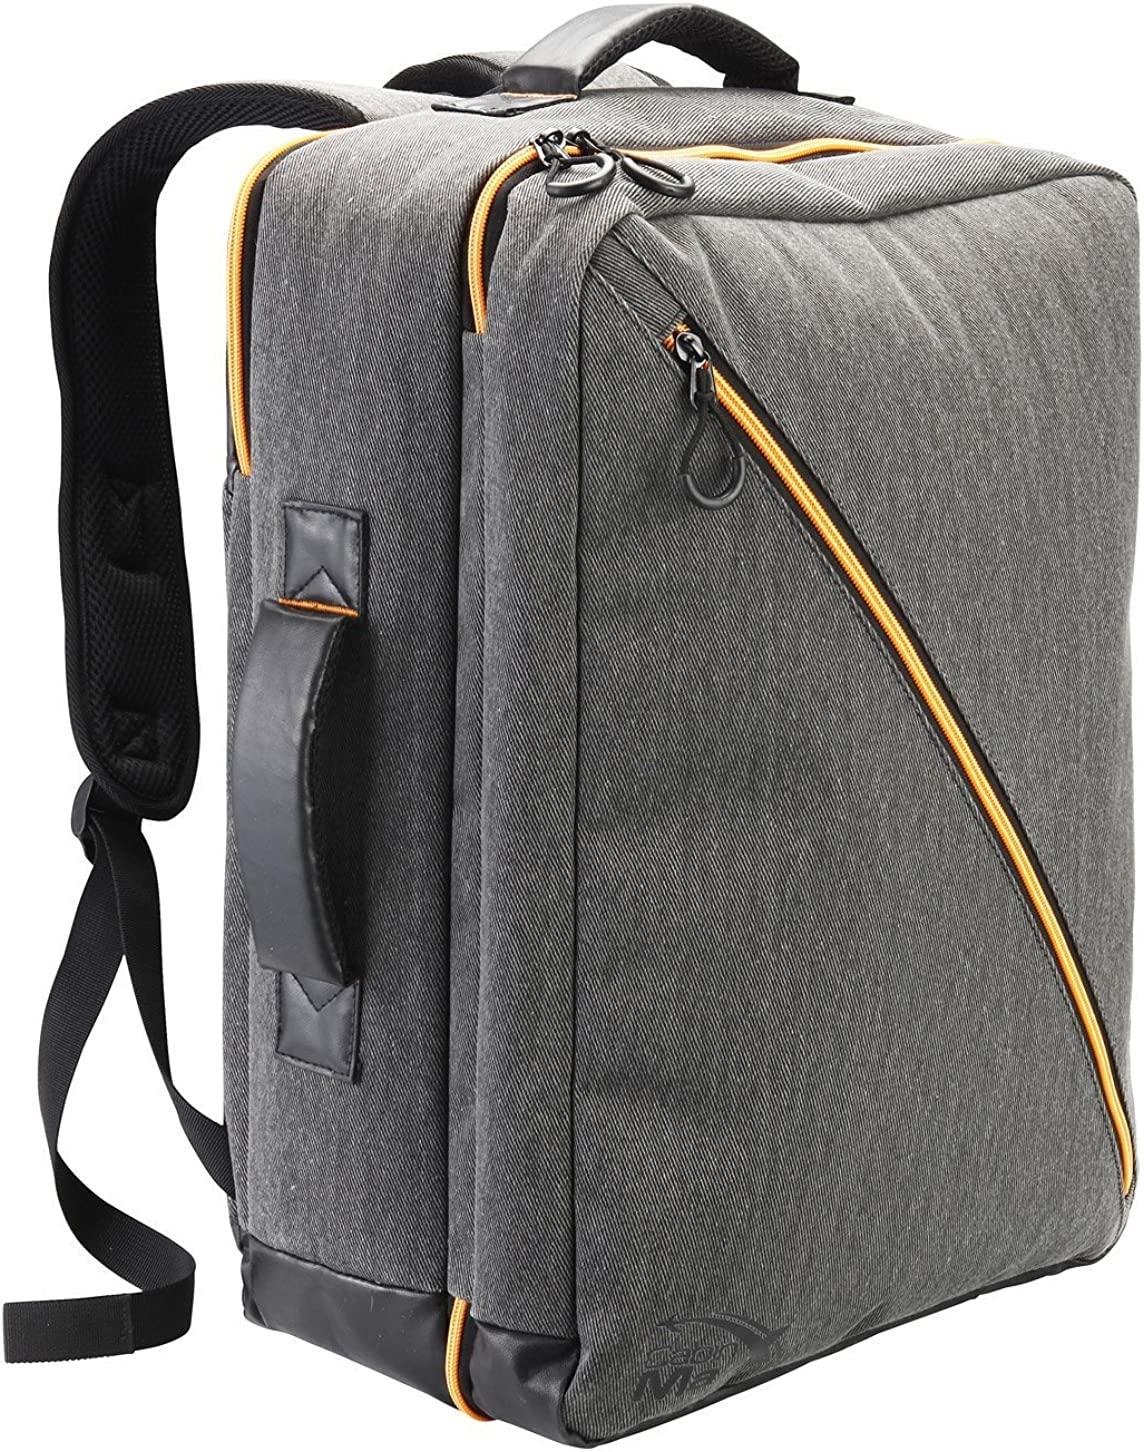 Cabin Max Oxford 50 x 40 x 20 cm Carry On Equipaje – Mochila (Gris)